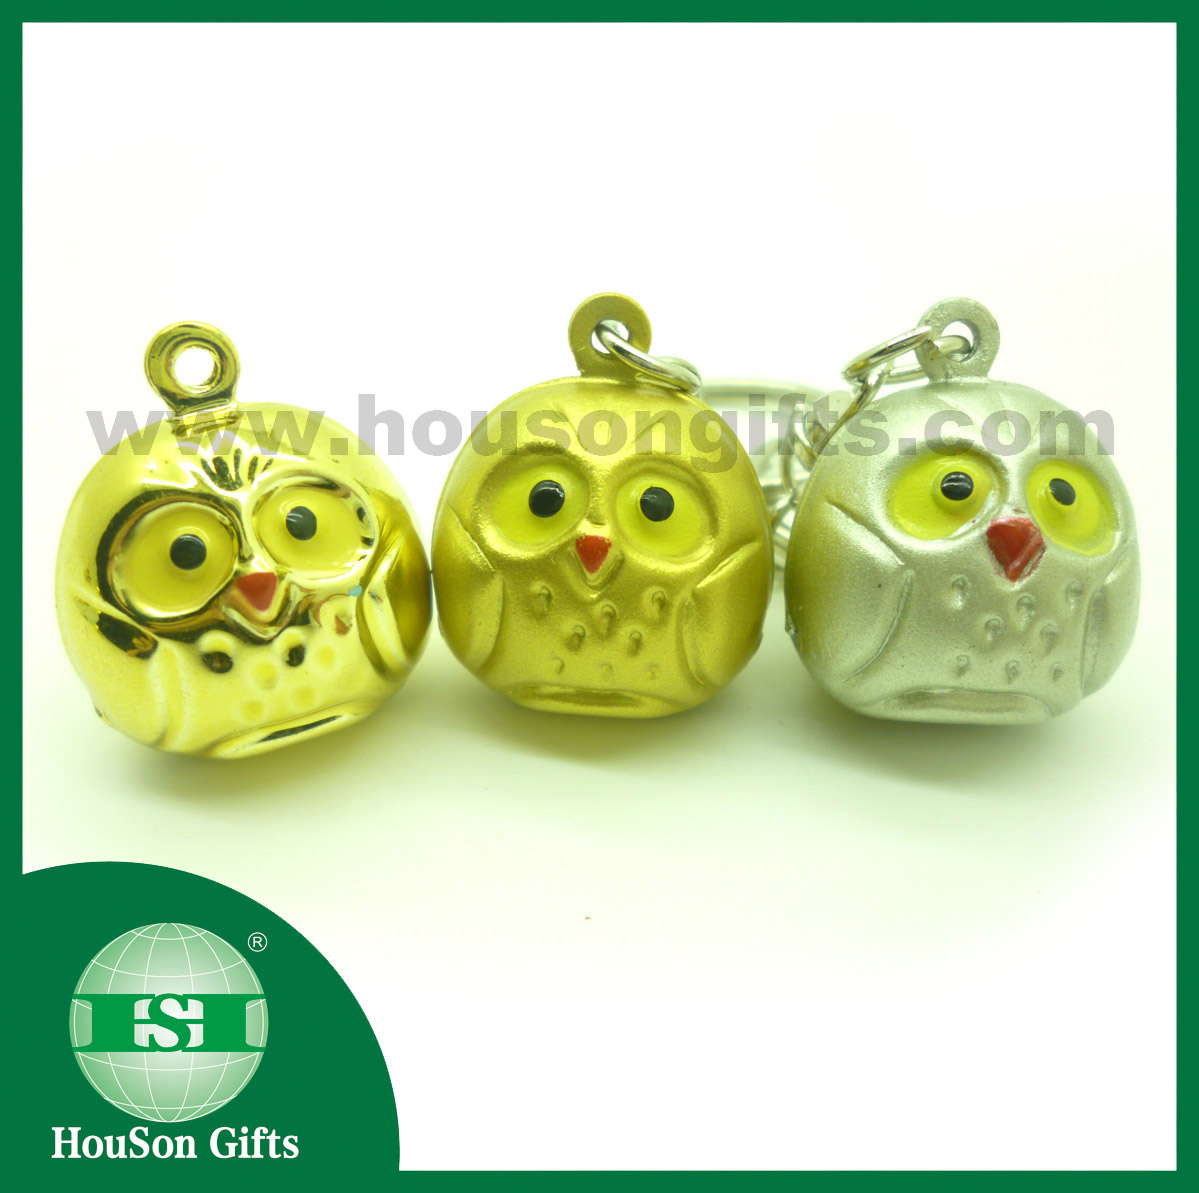 Brass owl jingle bell